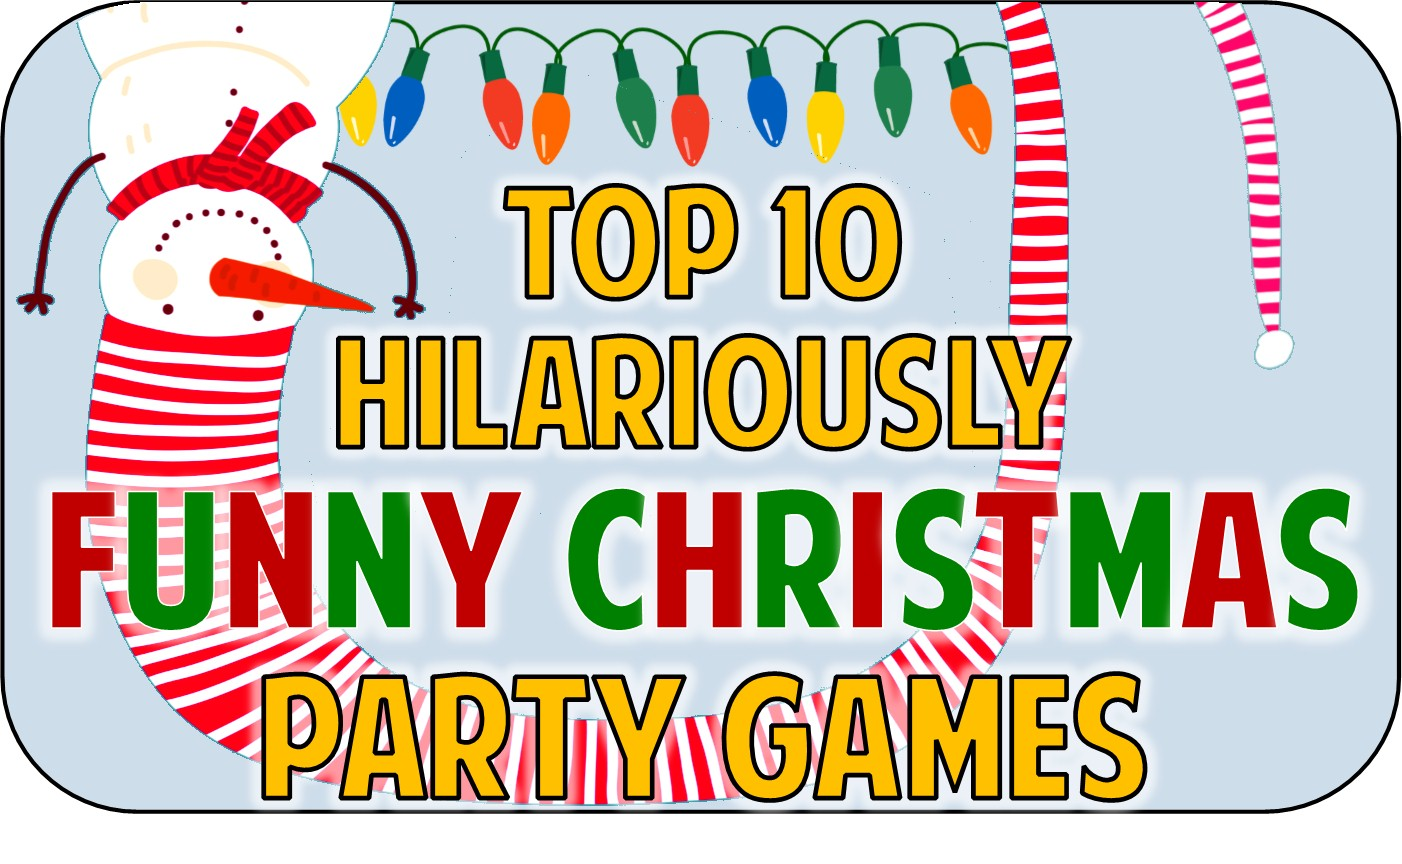 Funny Christmas Party Games Ideas